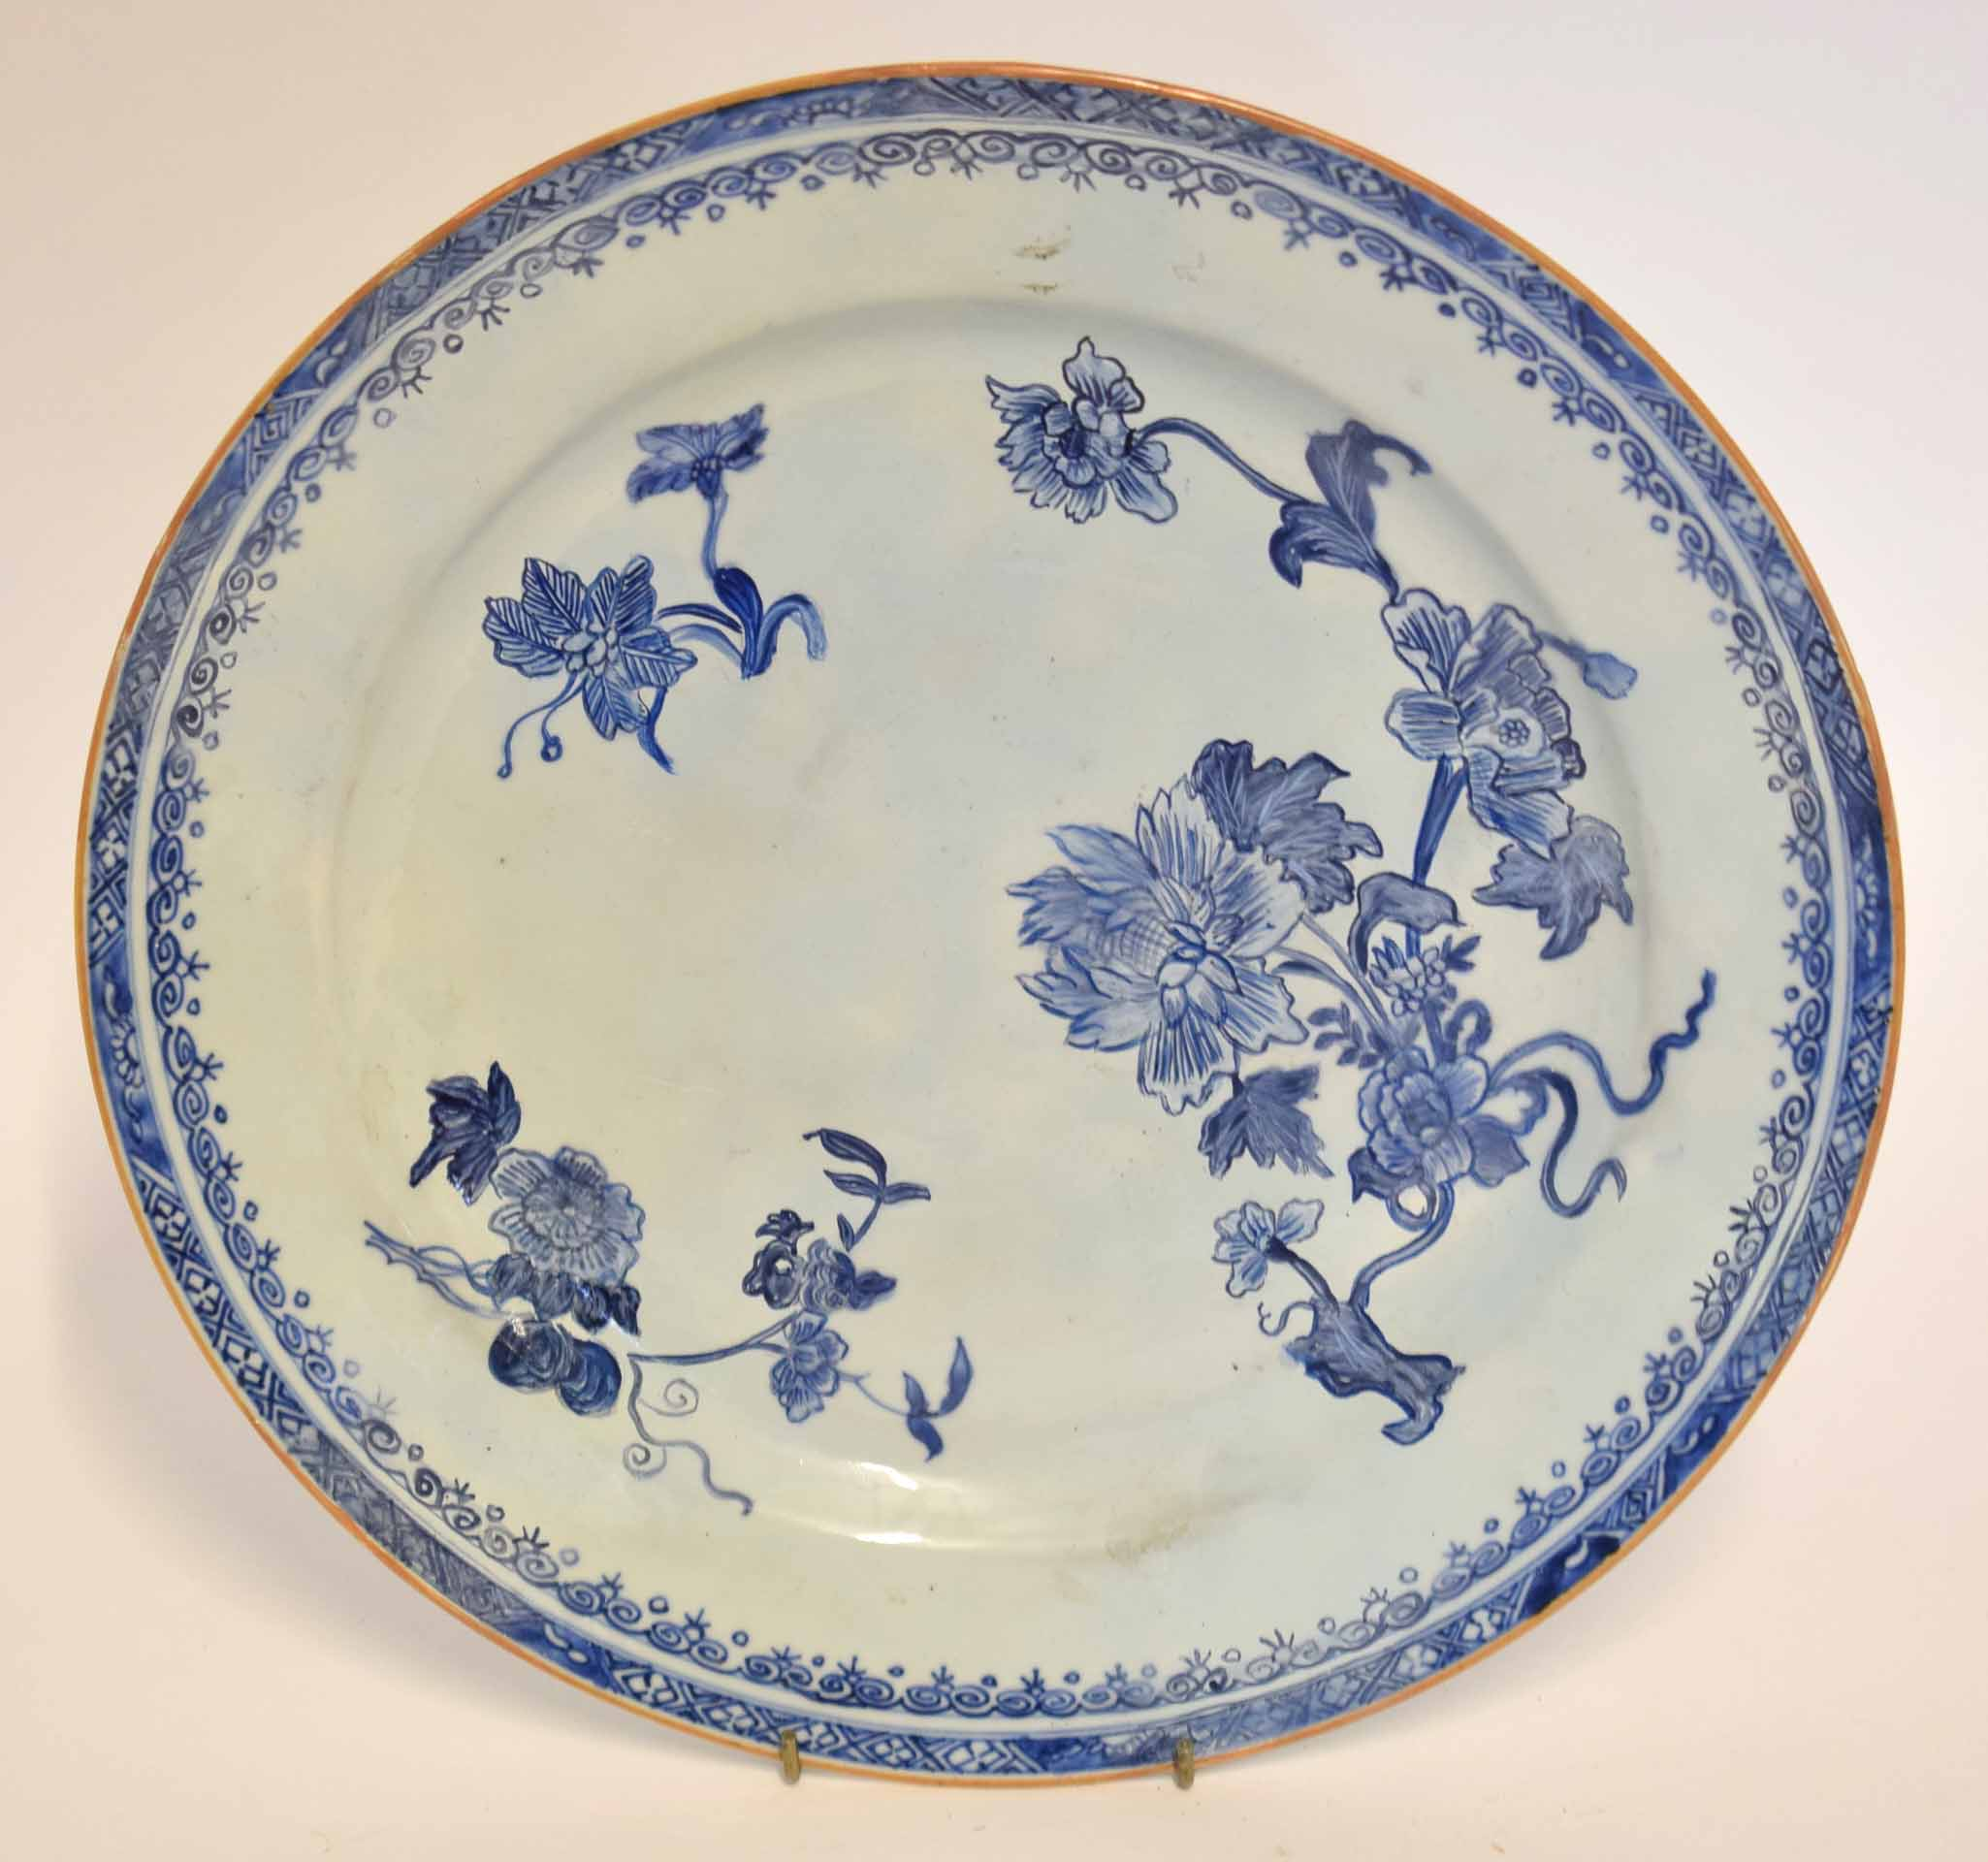 Lot 34 - 18th century Chinese charger with floral decoration in underglaze blue within a cell diaper border